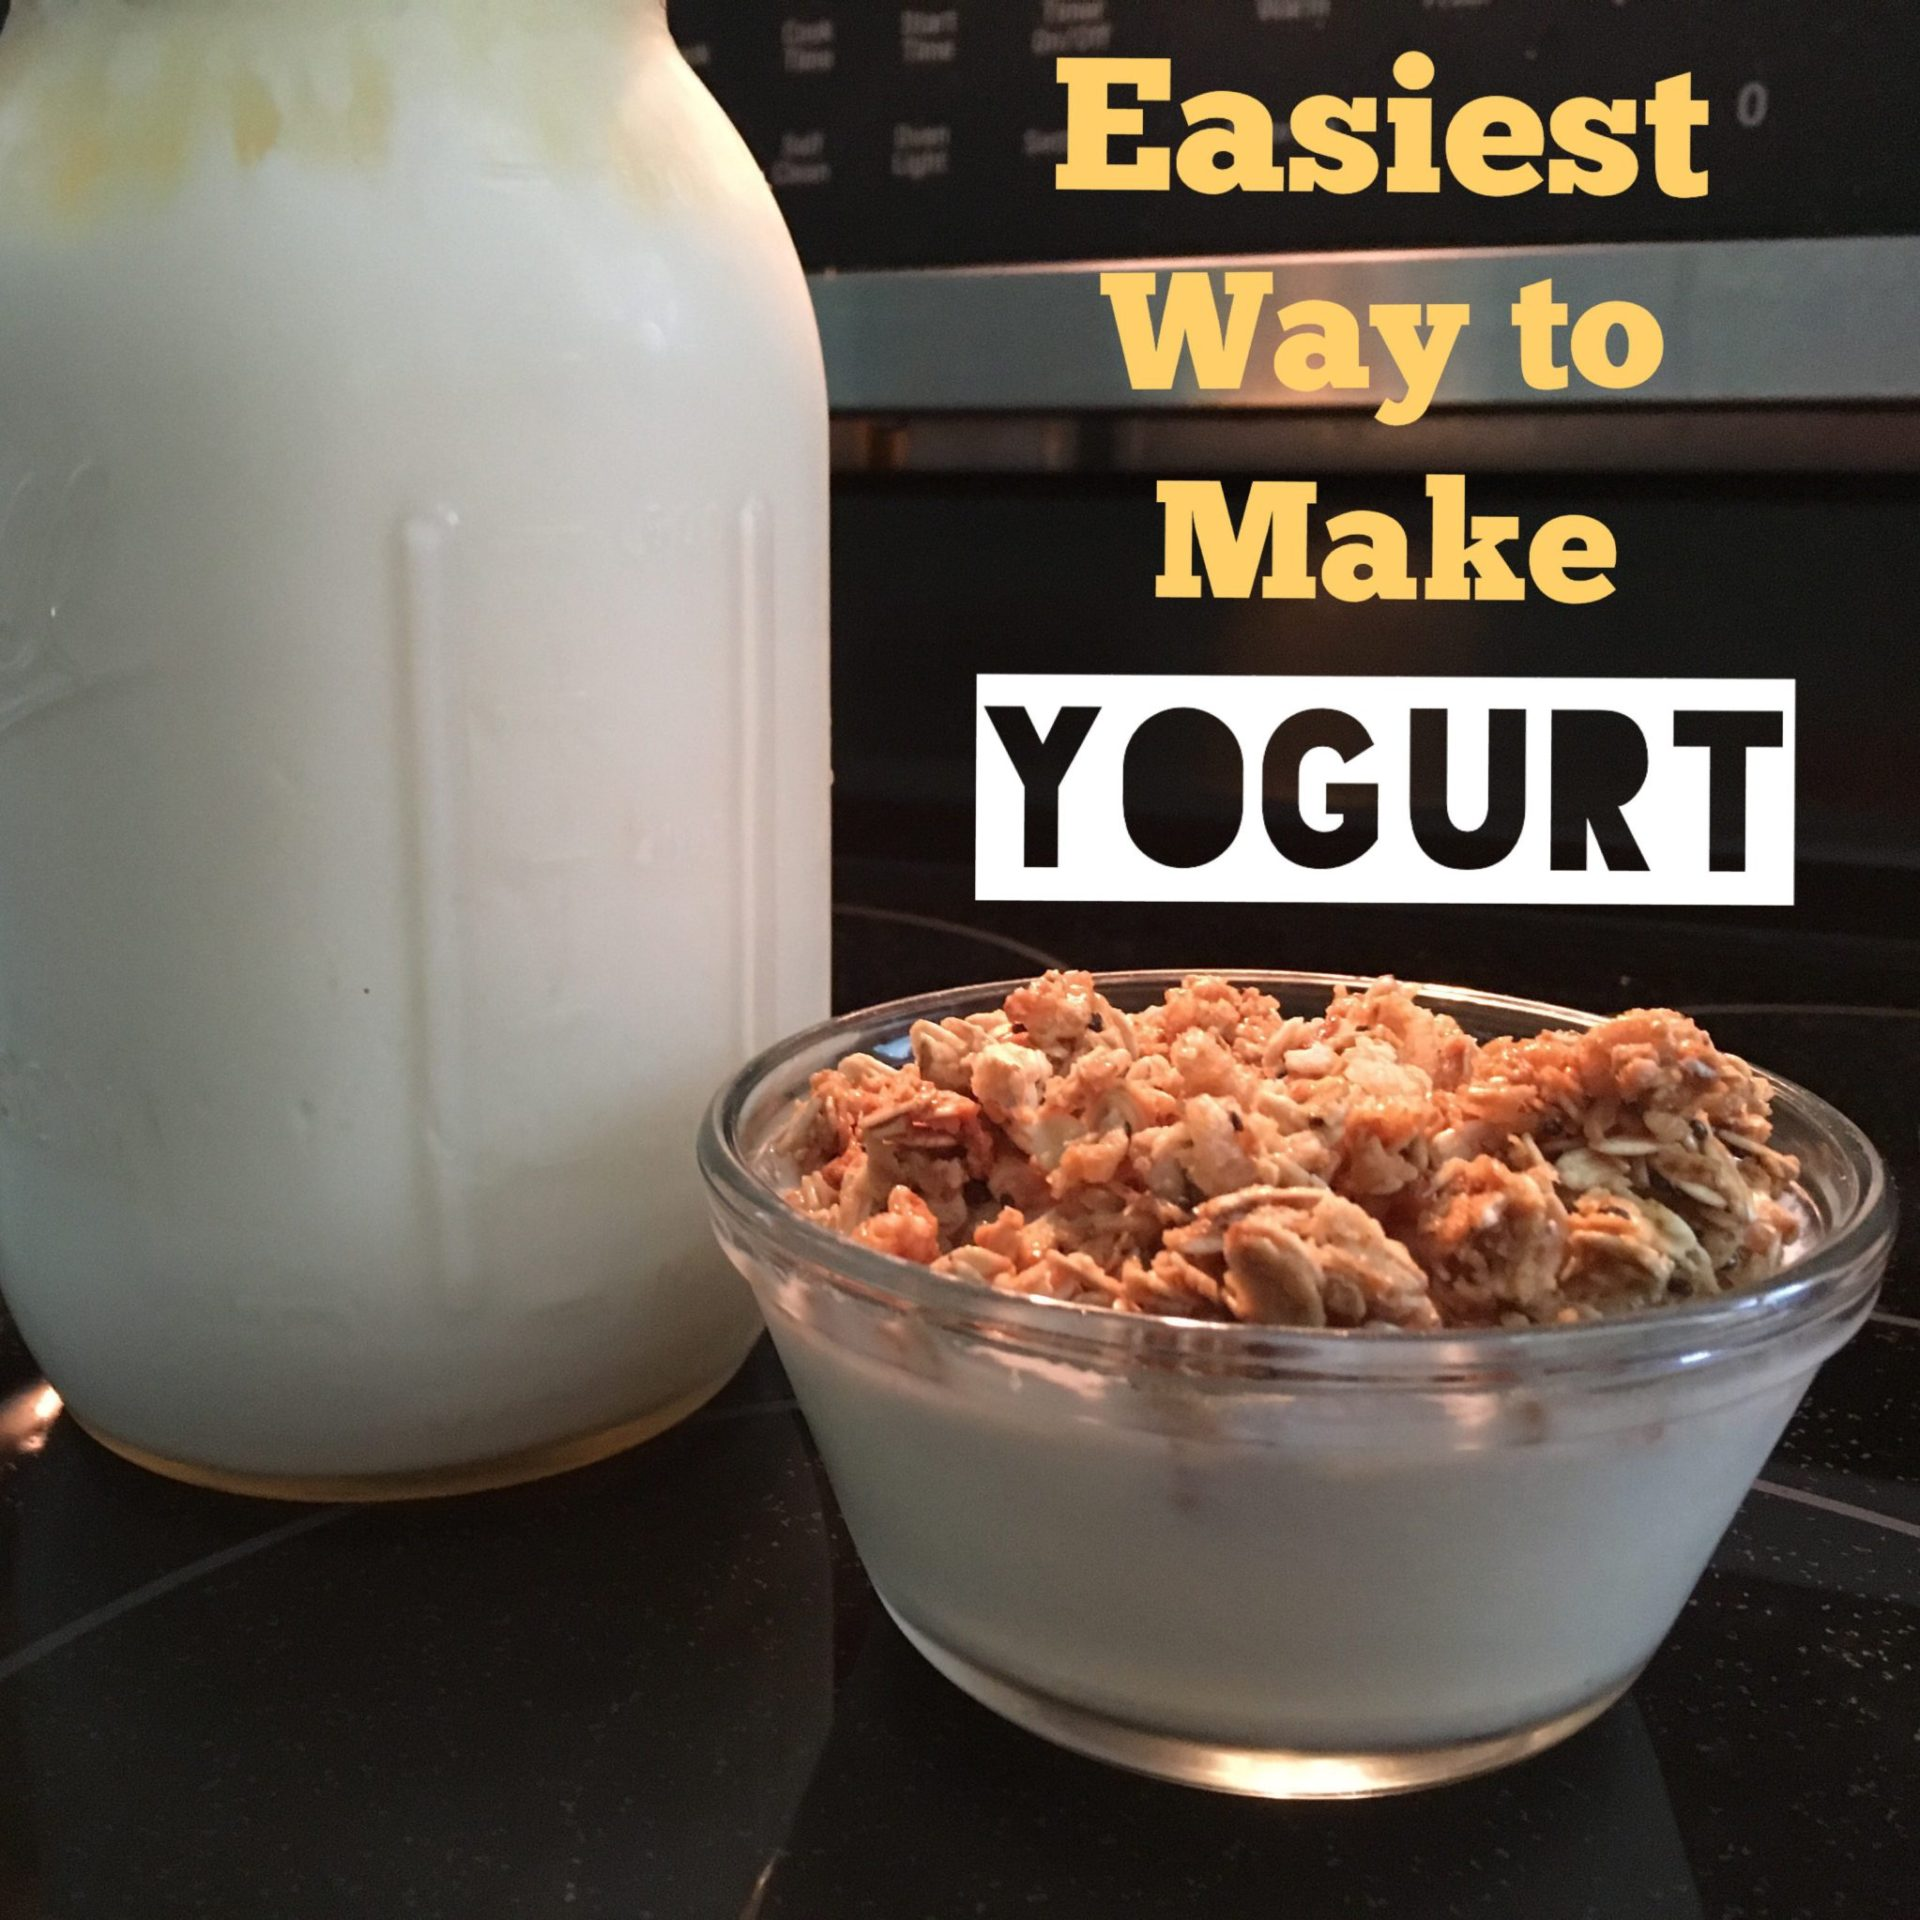 Easiest way to make yogurt